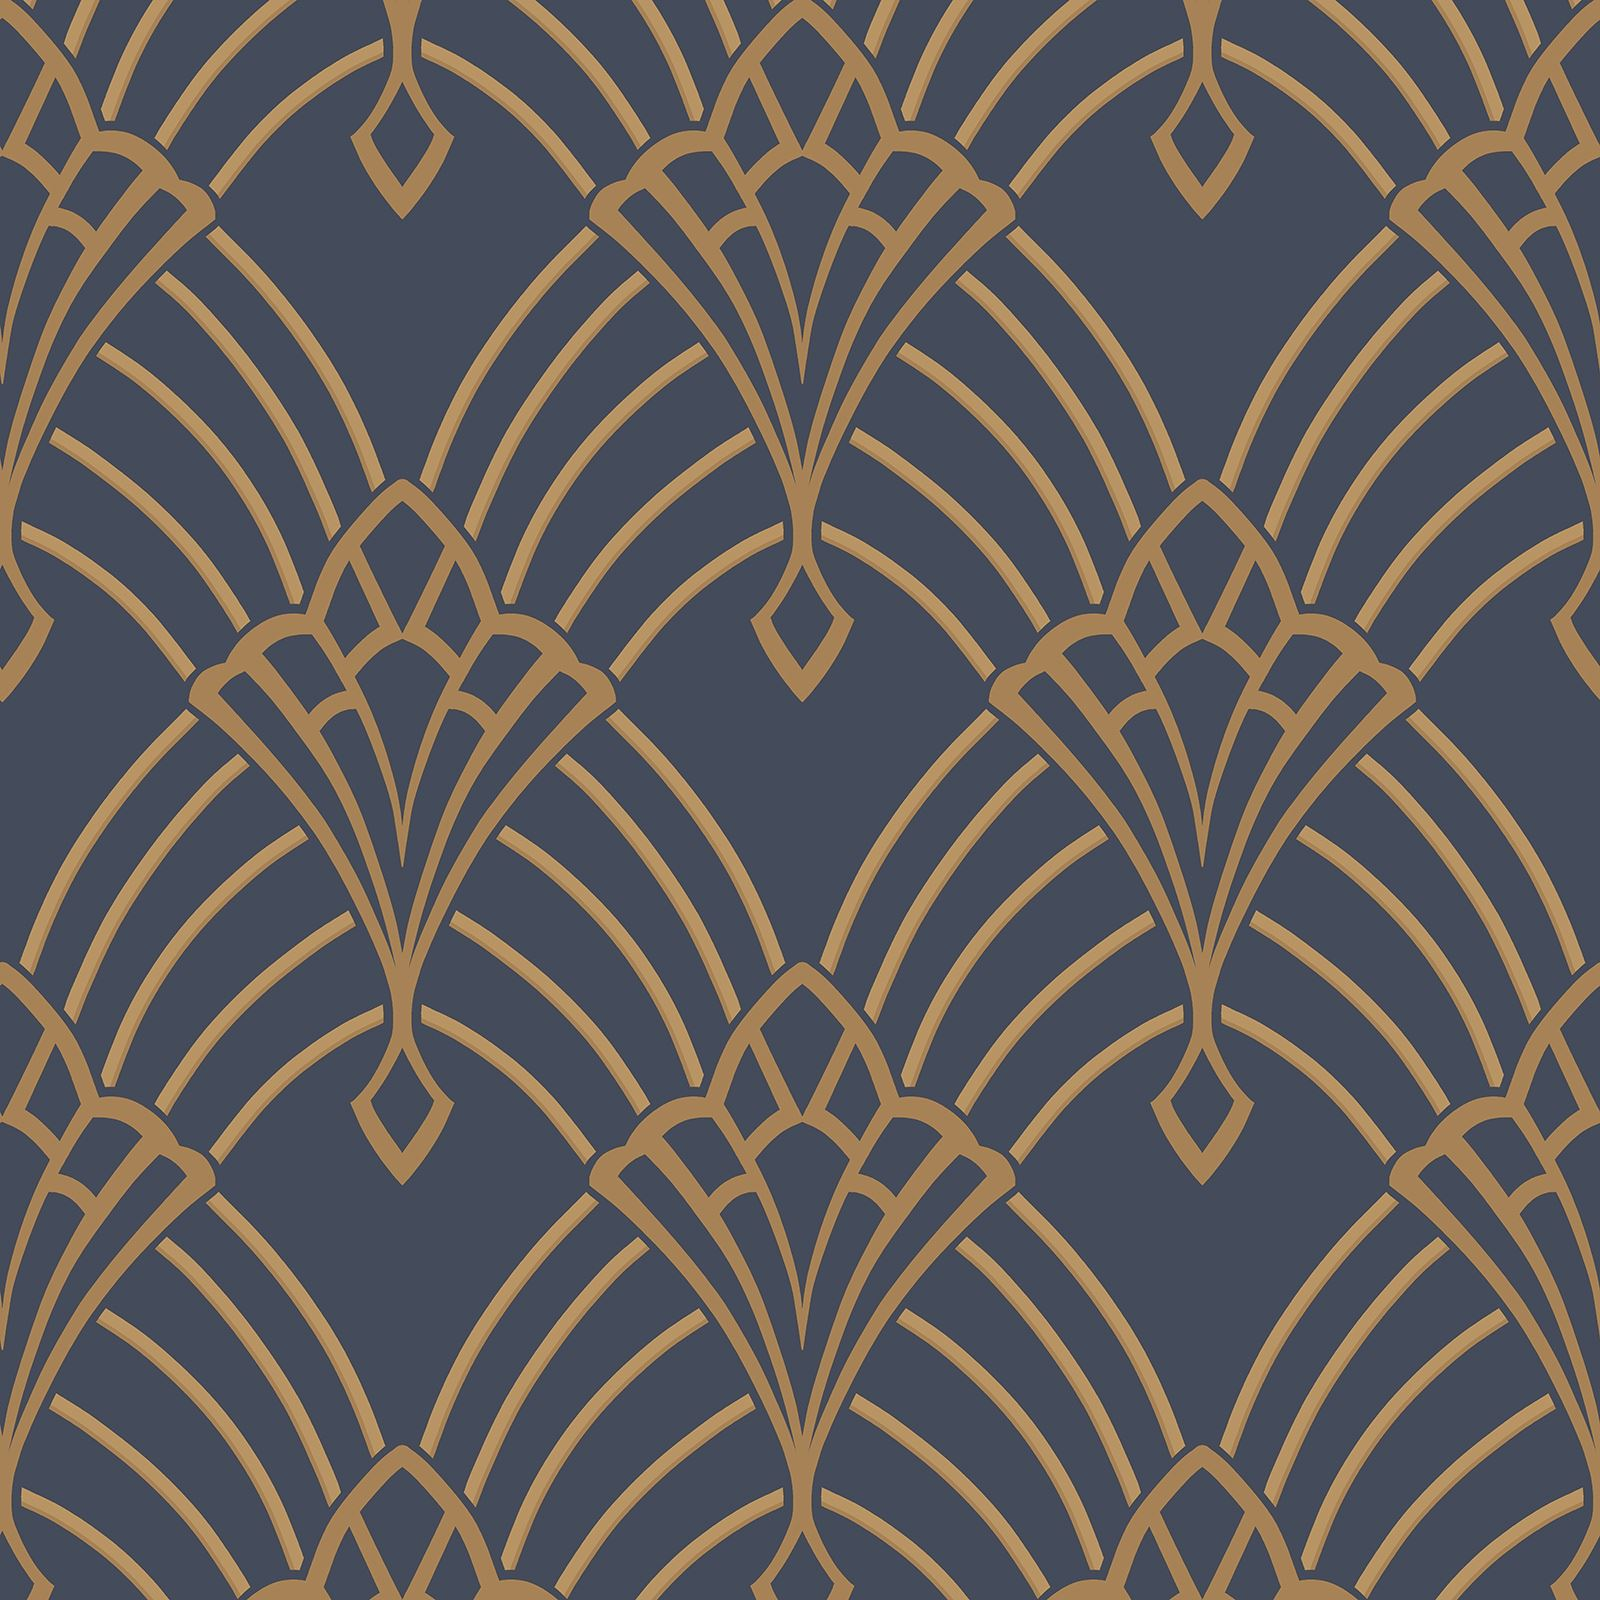 Art Deco Stile Astoria Art Deco Wallpaper Dark Blue Gold Rasch 305340